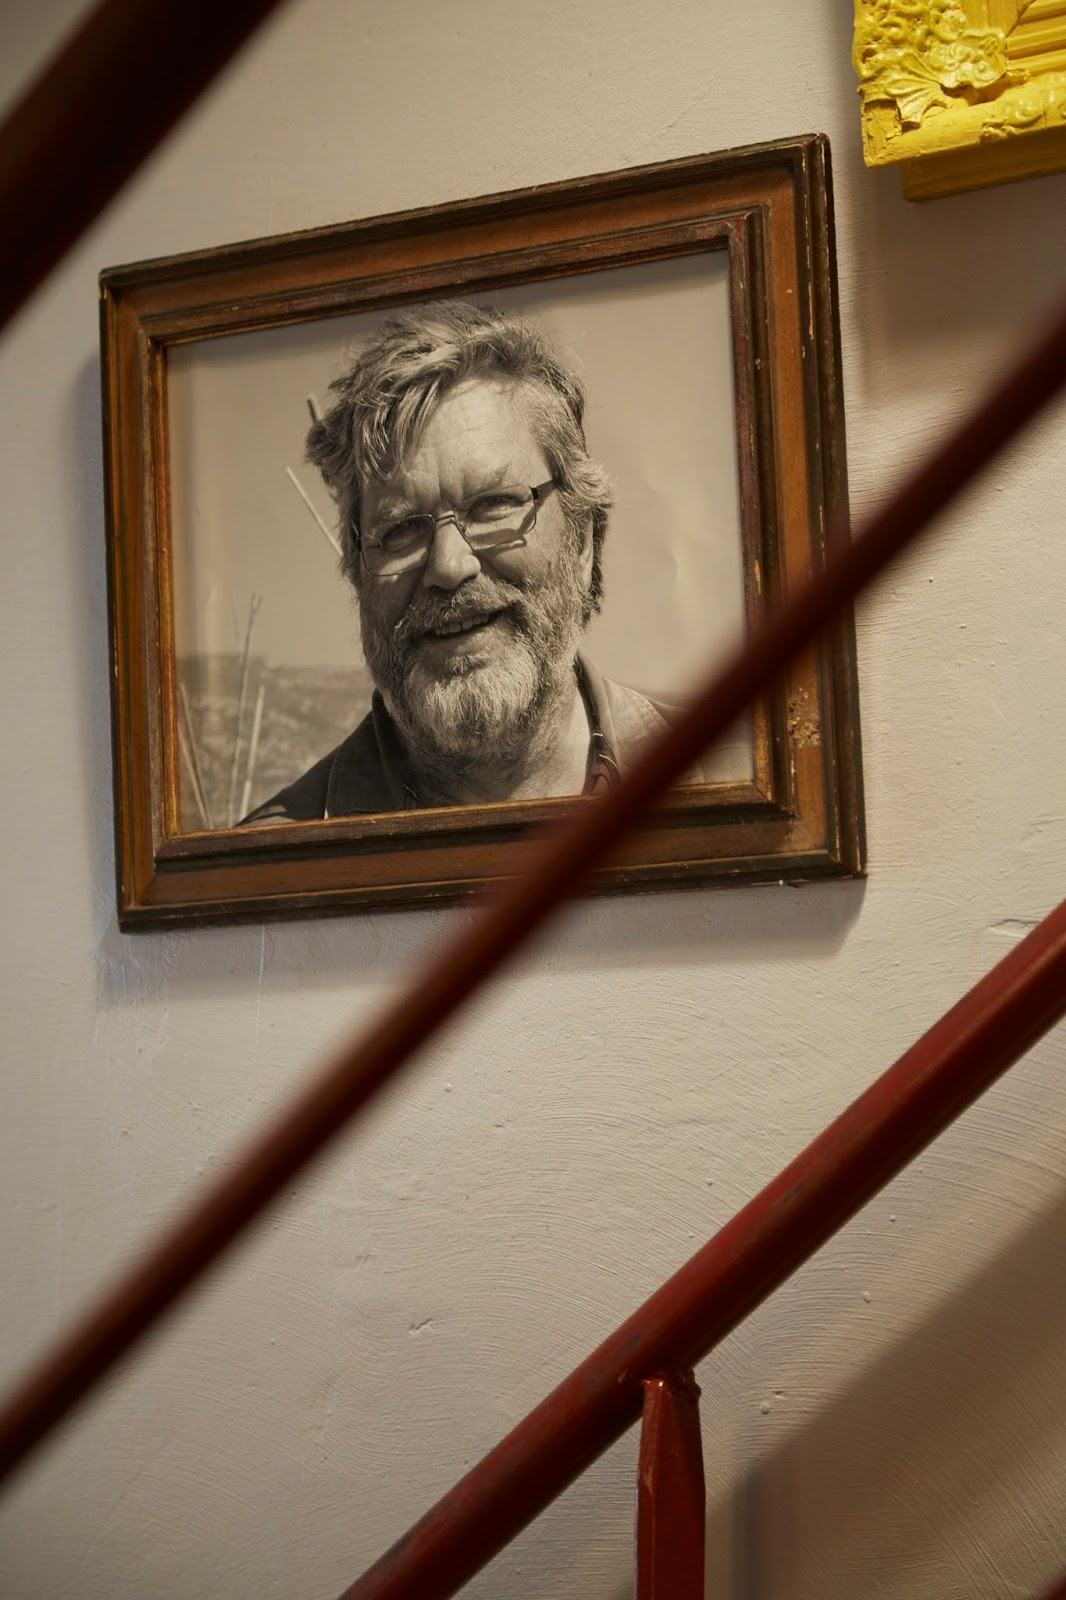 grain de sable, marseille, france, eco city guide, conscious city guide, eurostar, vegan marseille, vegetarian marseille, organic marseille, bio marseille, slow food, sustainable tourism, slow living, eco food, eco resturant, seasonal, local, rue du baignoir, belsunce, gluten-free marseille